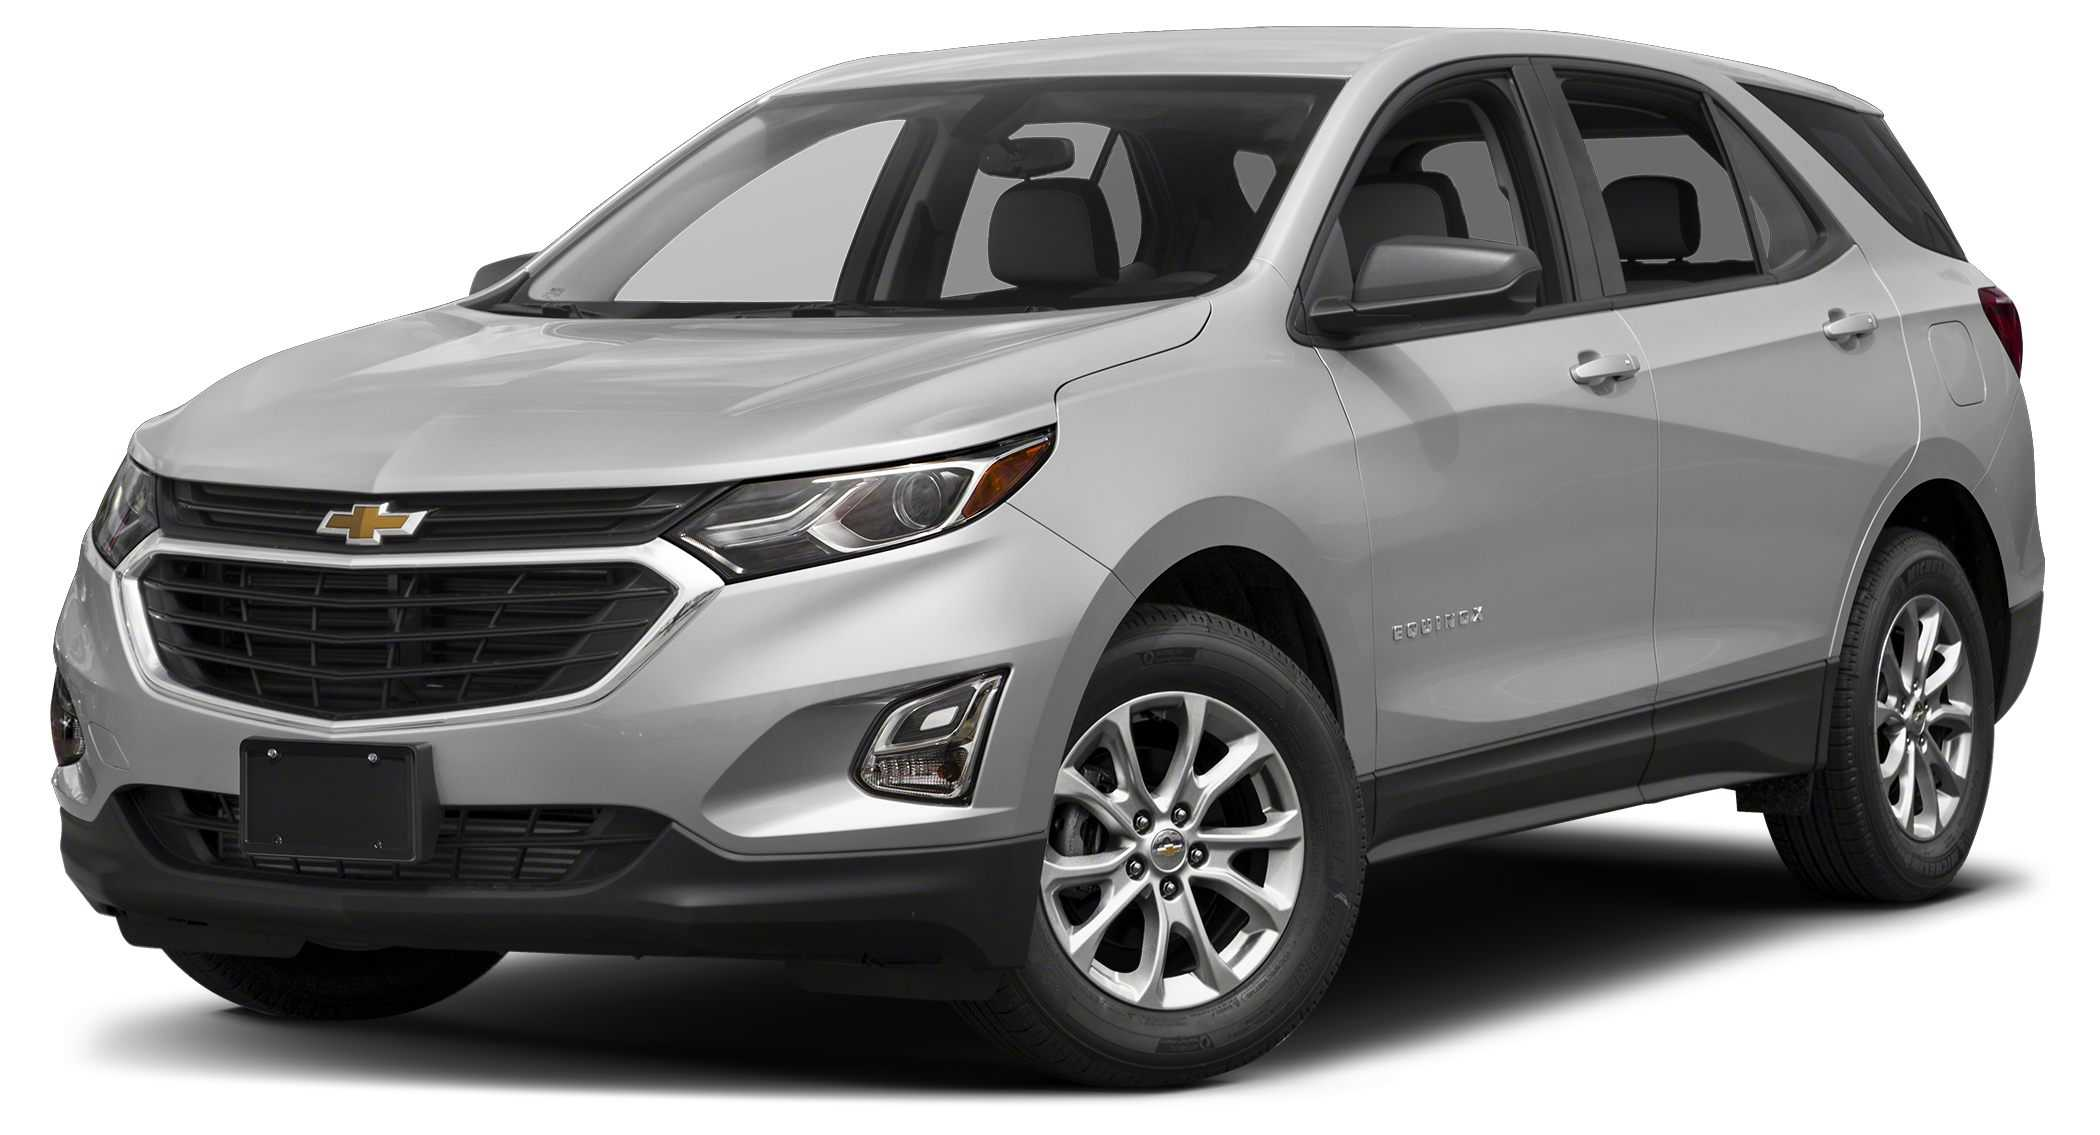 2018 CHEVROLET EQUINOX for sale in Port Orchard WA